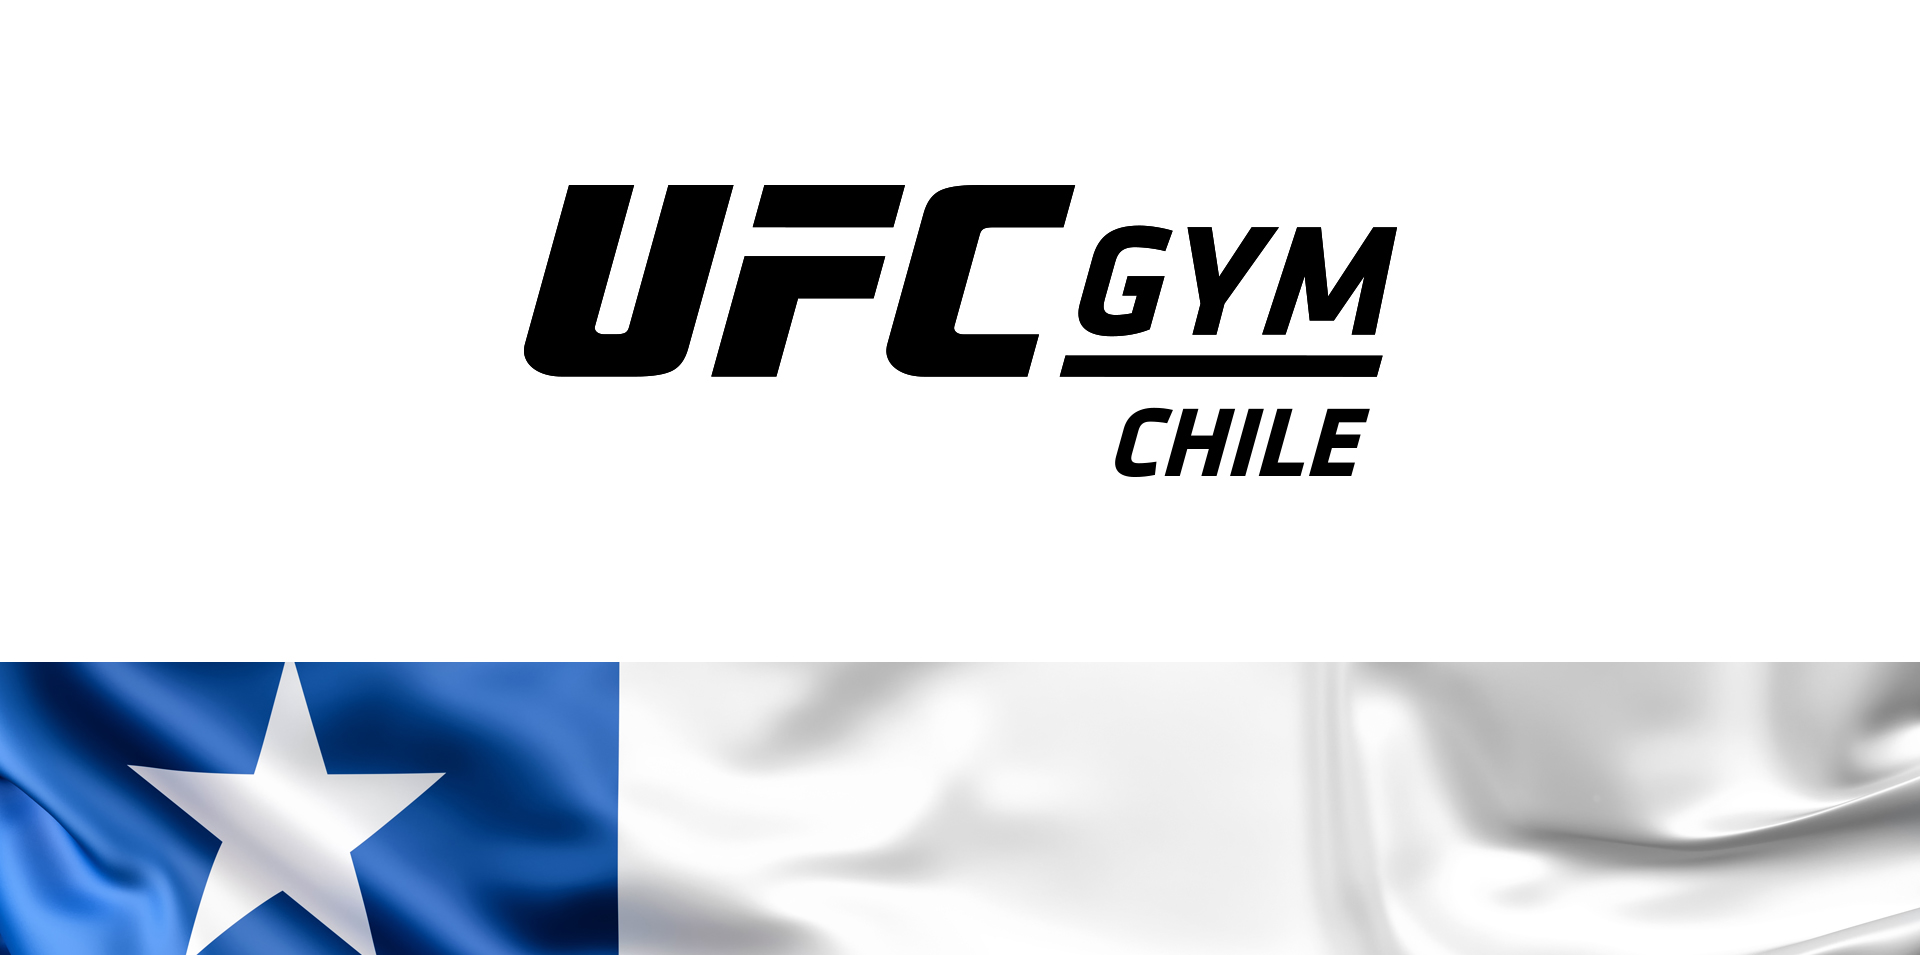 Chile Featured Image